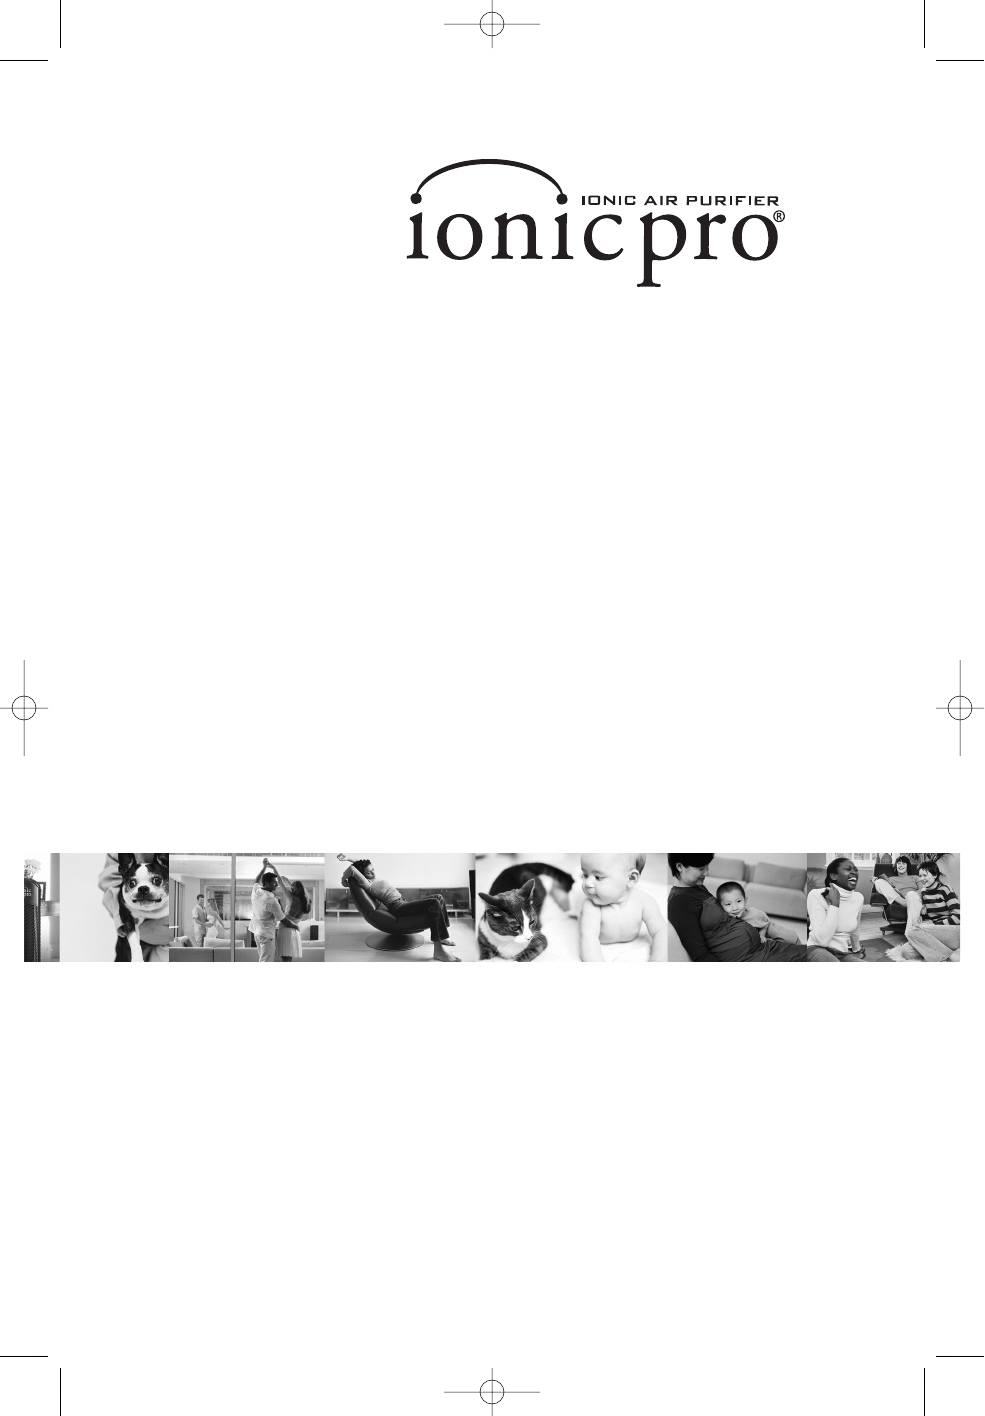 ionic pro air cleaner ca500 user guide manualsonline com rh camera manualsonline com ionic pro ca500b manual ionic pro manual pdf